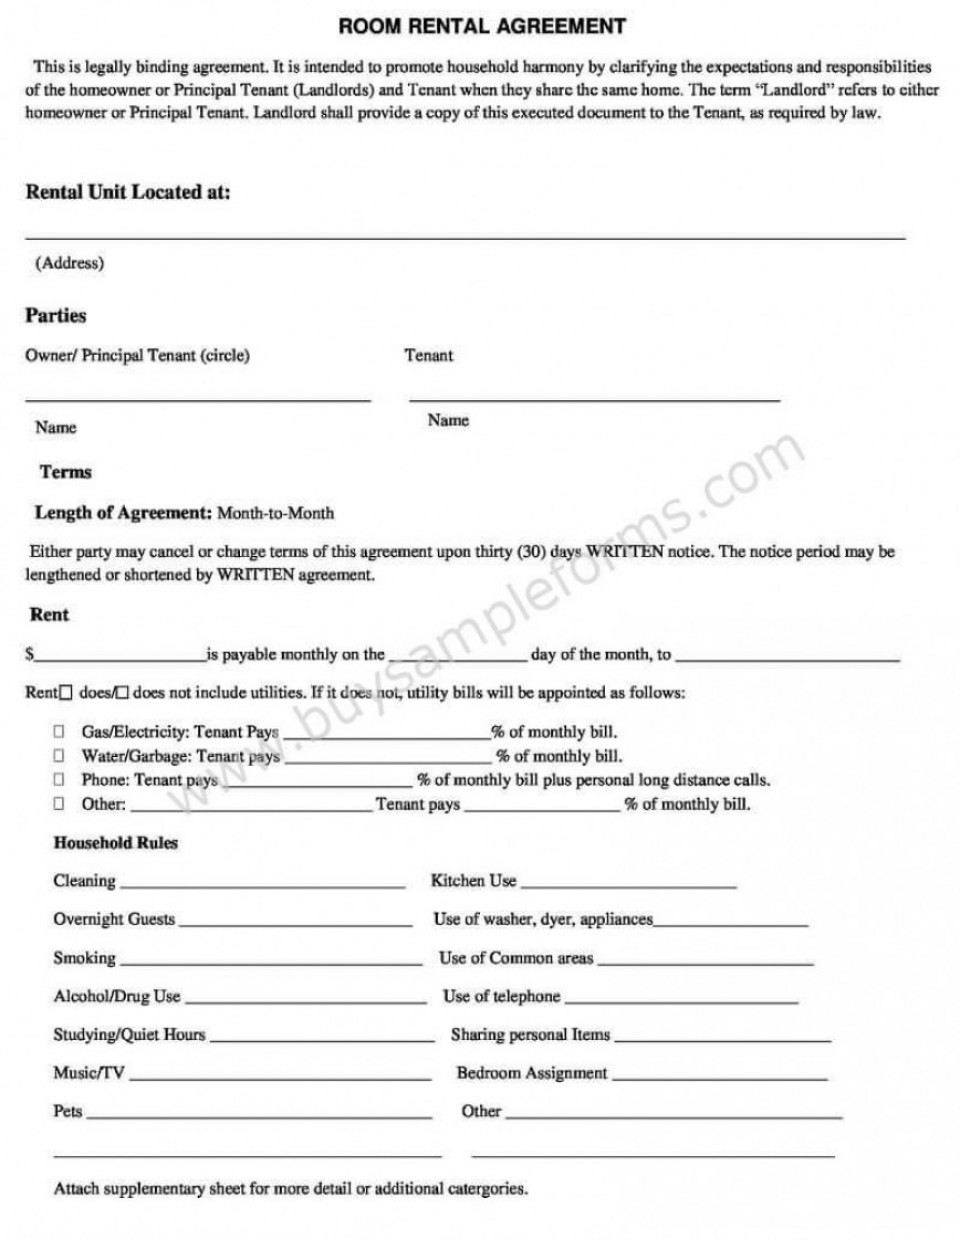 003 Marvelou Free Rental Agreement Template Word High Resolution  South Africa House Lease Doc960